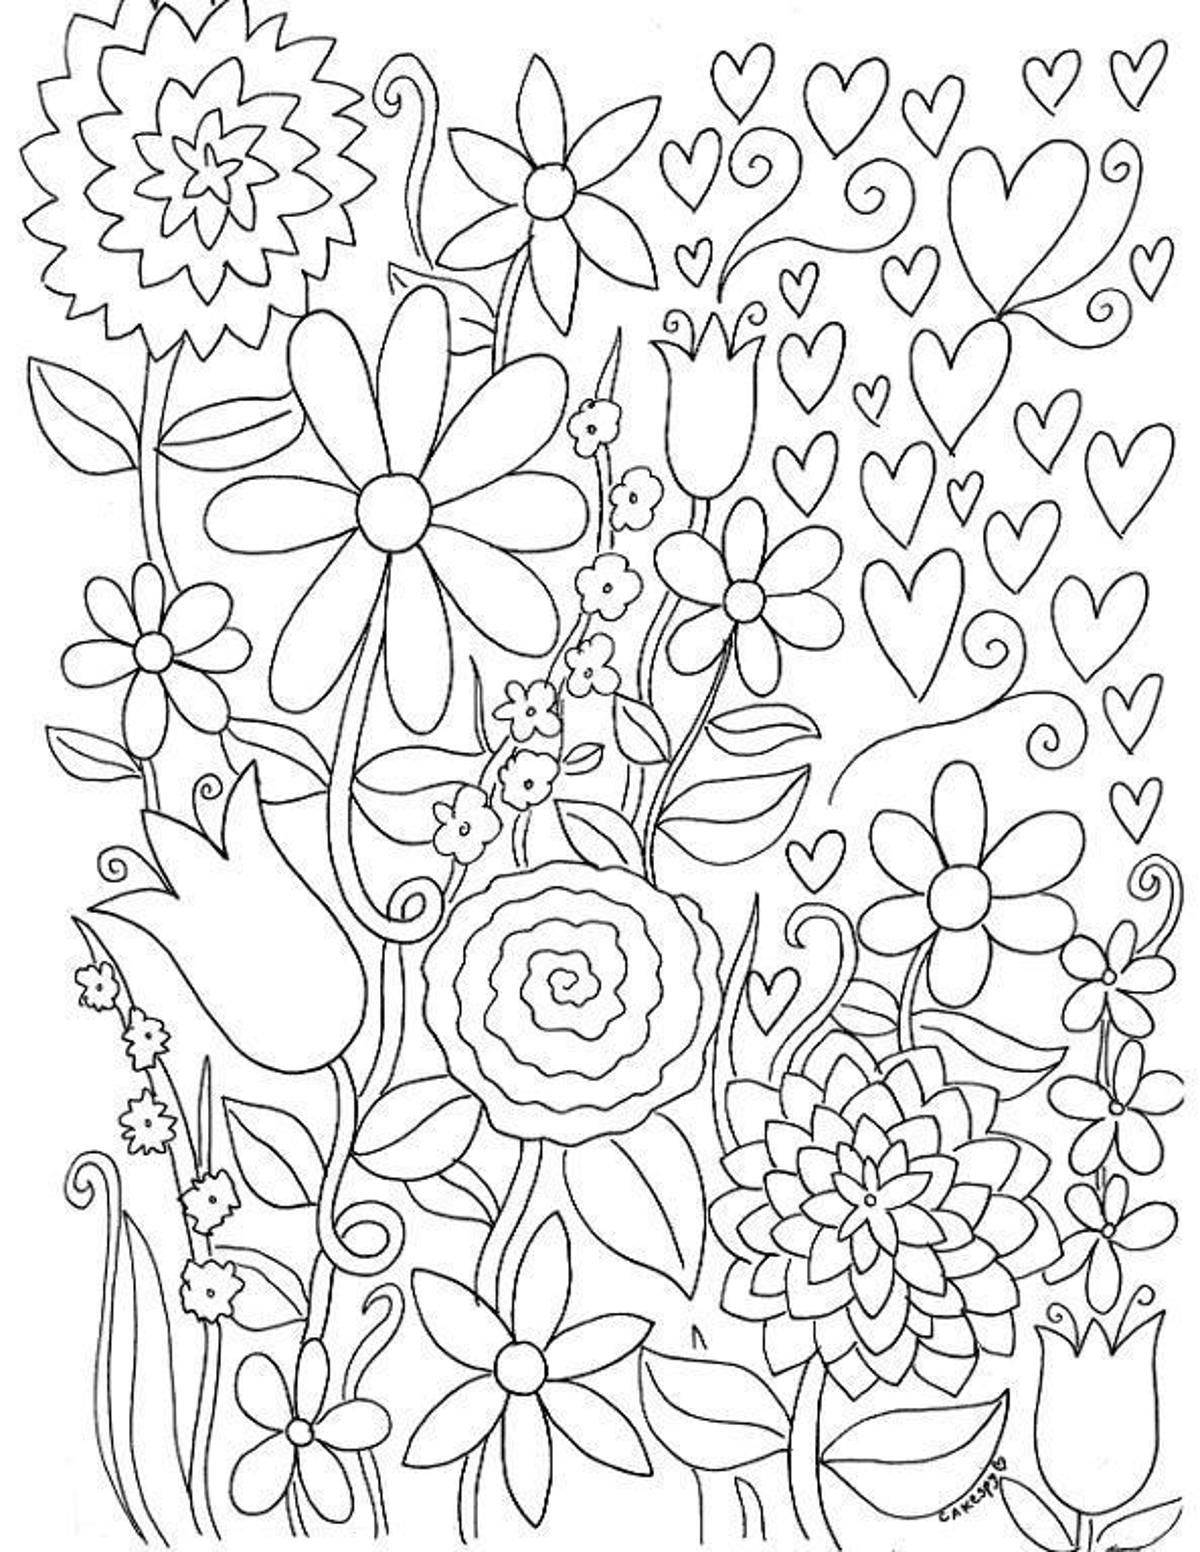 Craftsy Exclusive Coloring Pages Bluprint Coloring Pages Free Coloring Pages Coloring Pages For Grown Ups